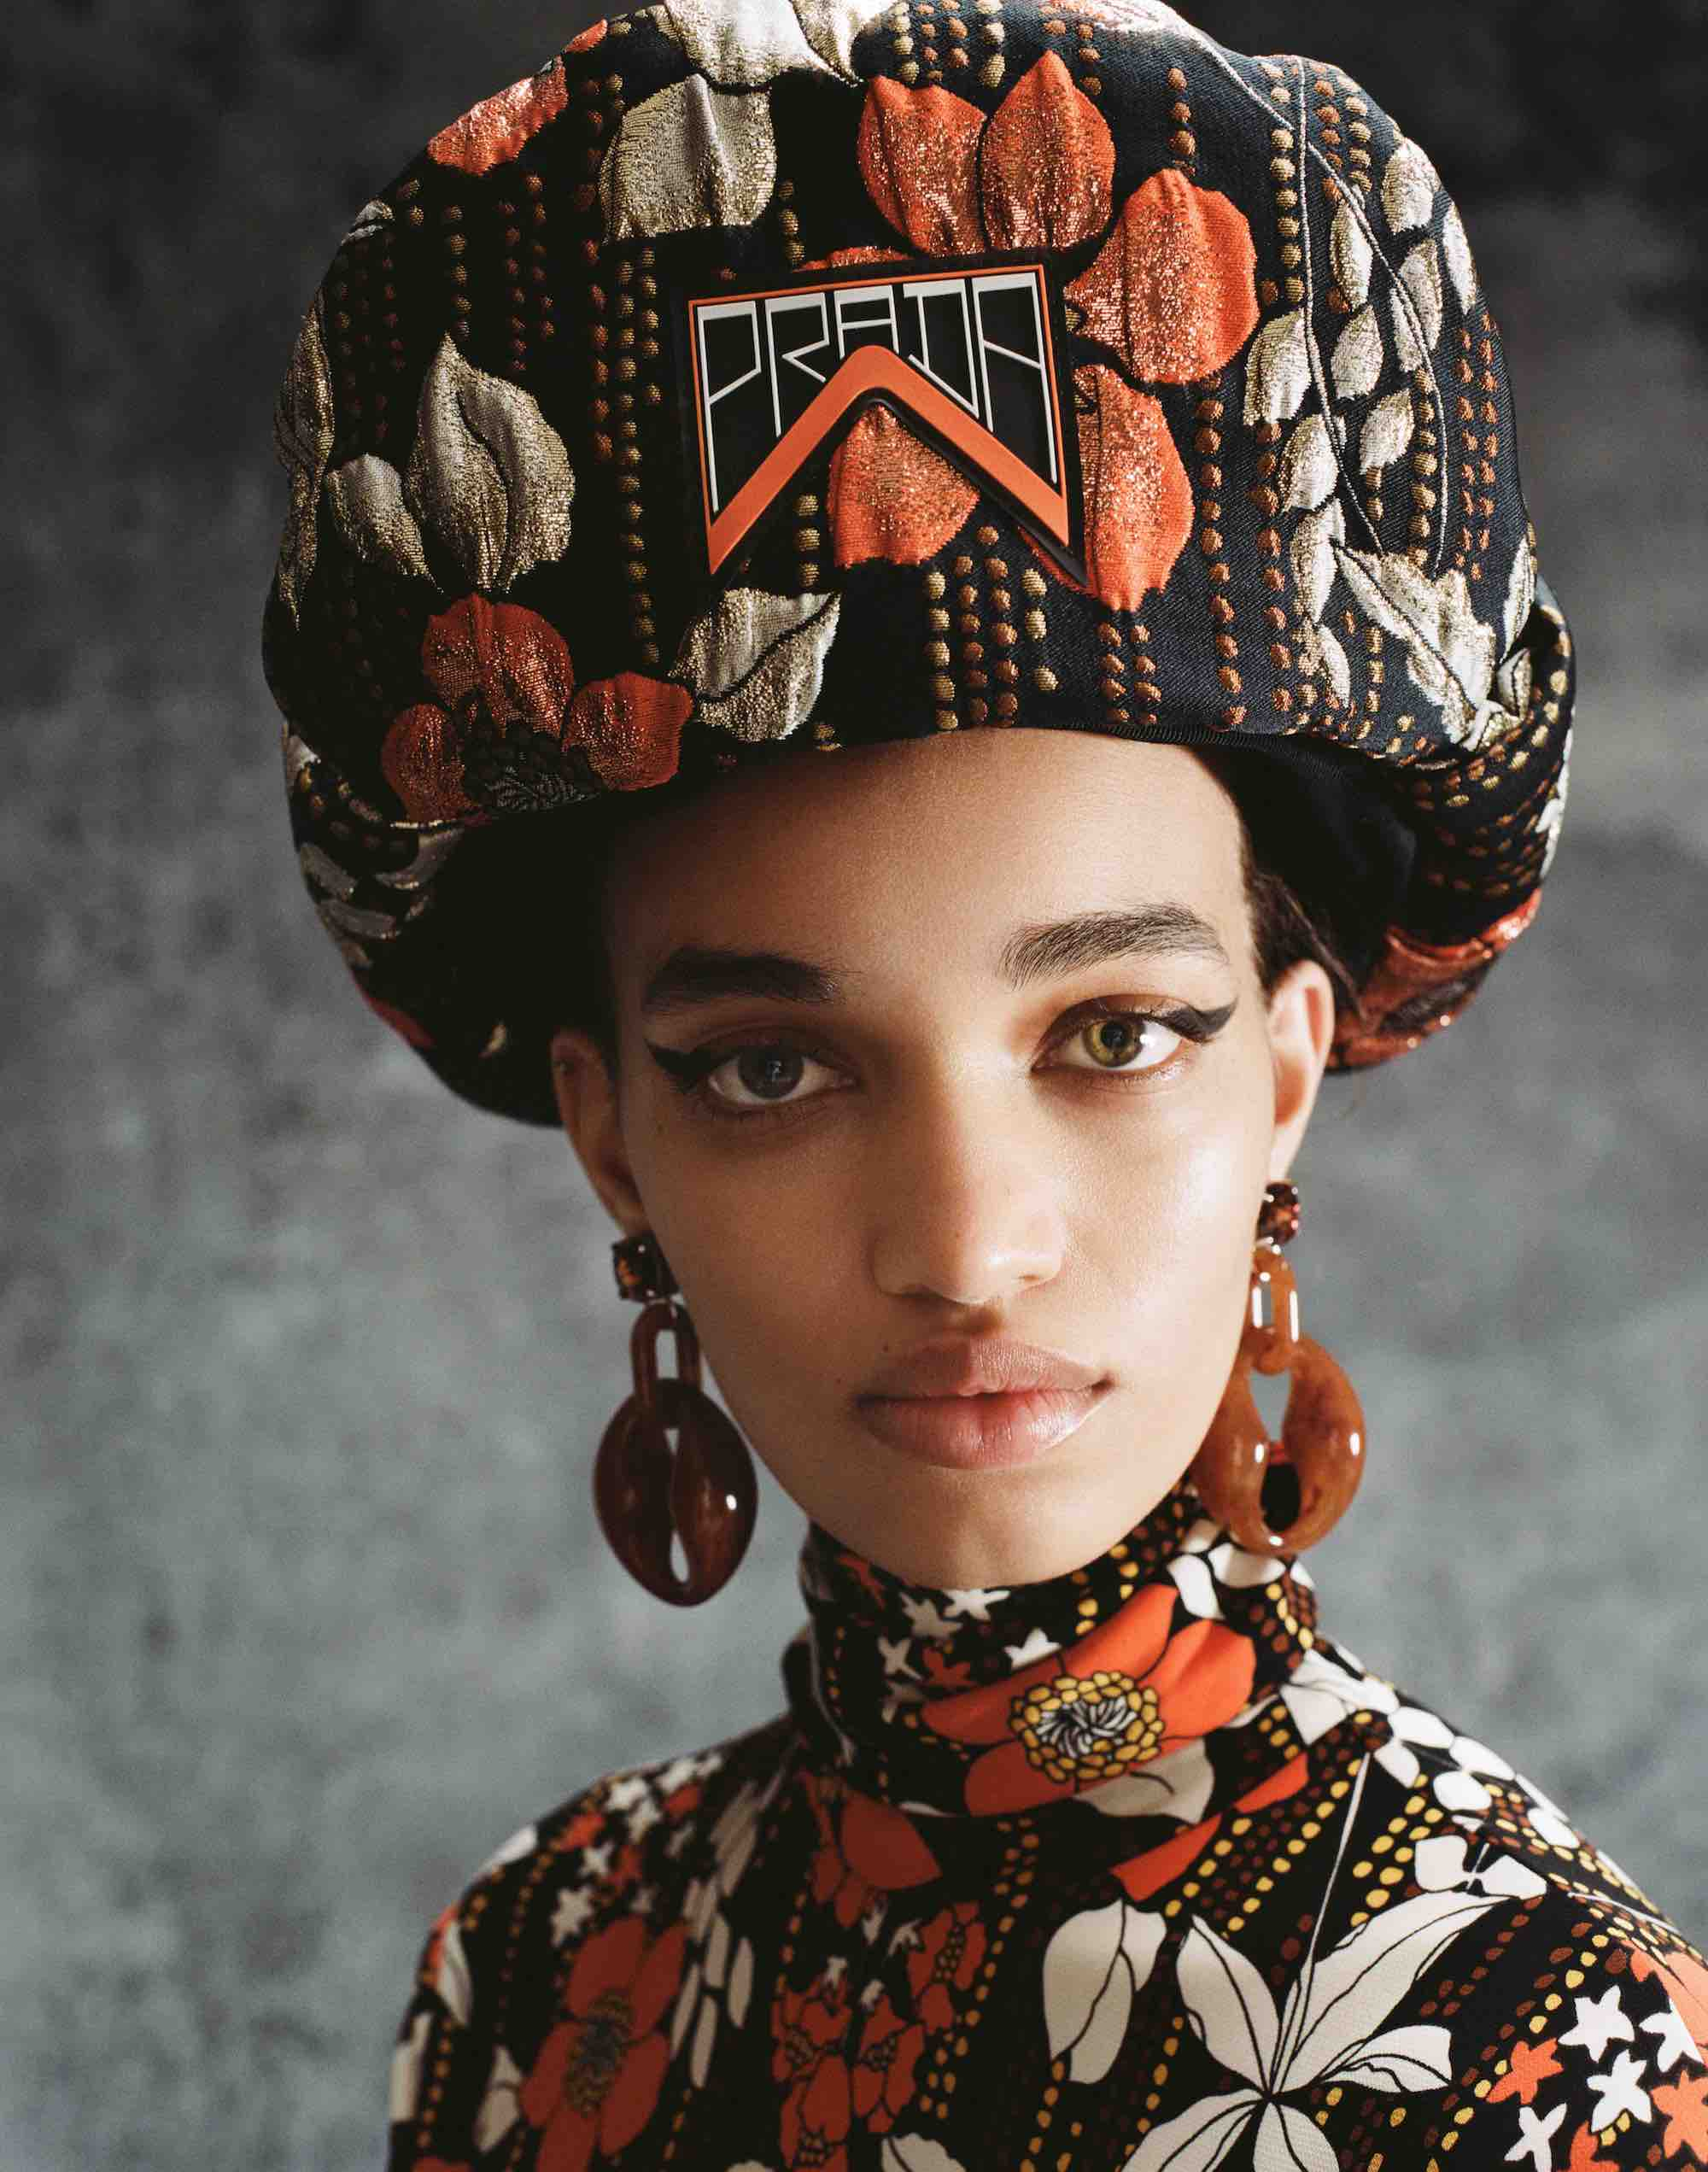 Prada AW18 fashion editorial from magazine floral hat